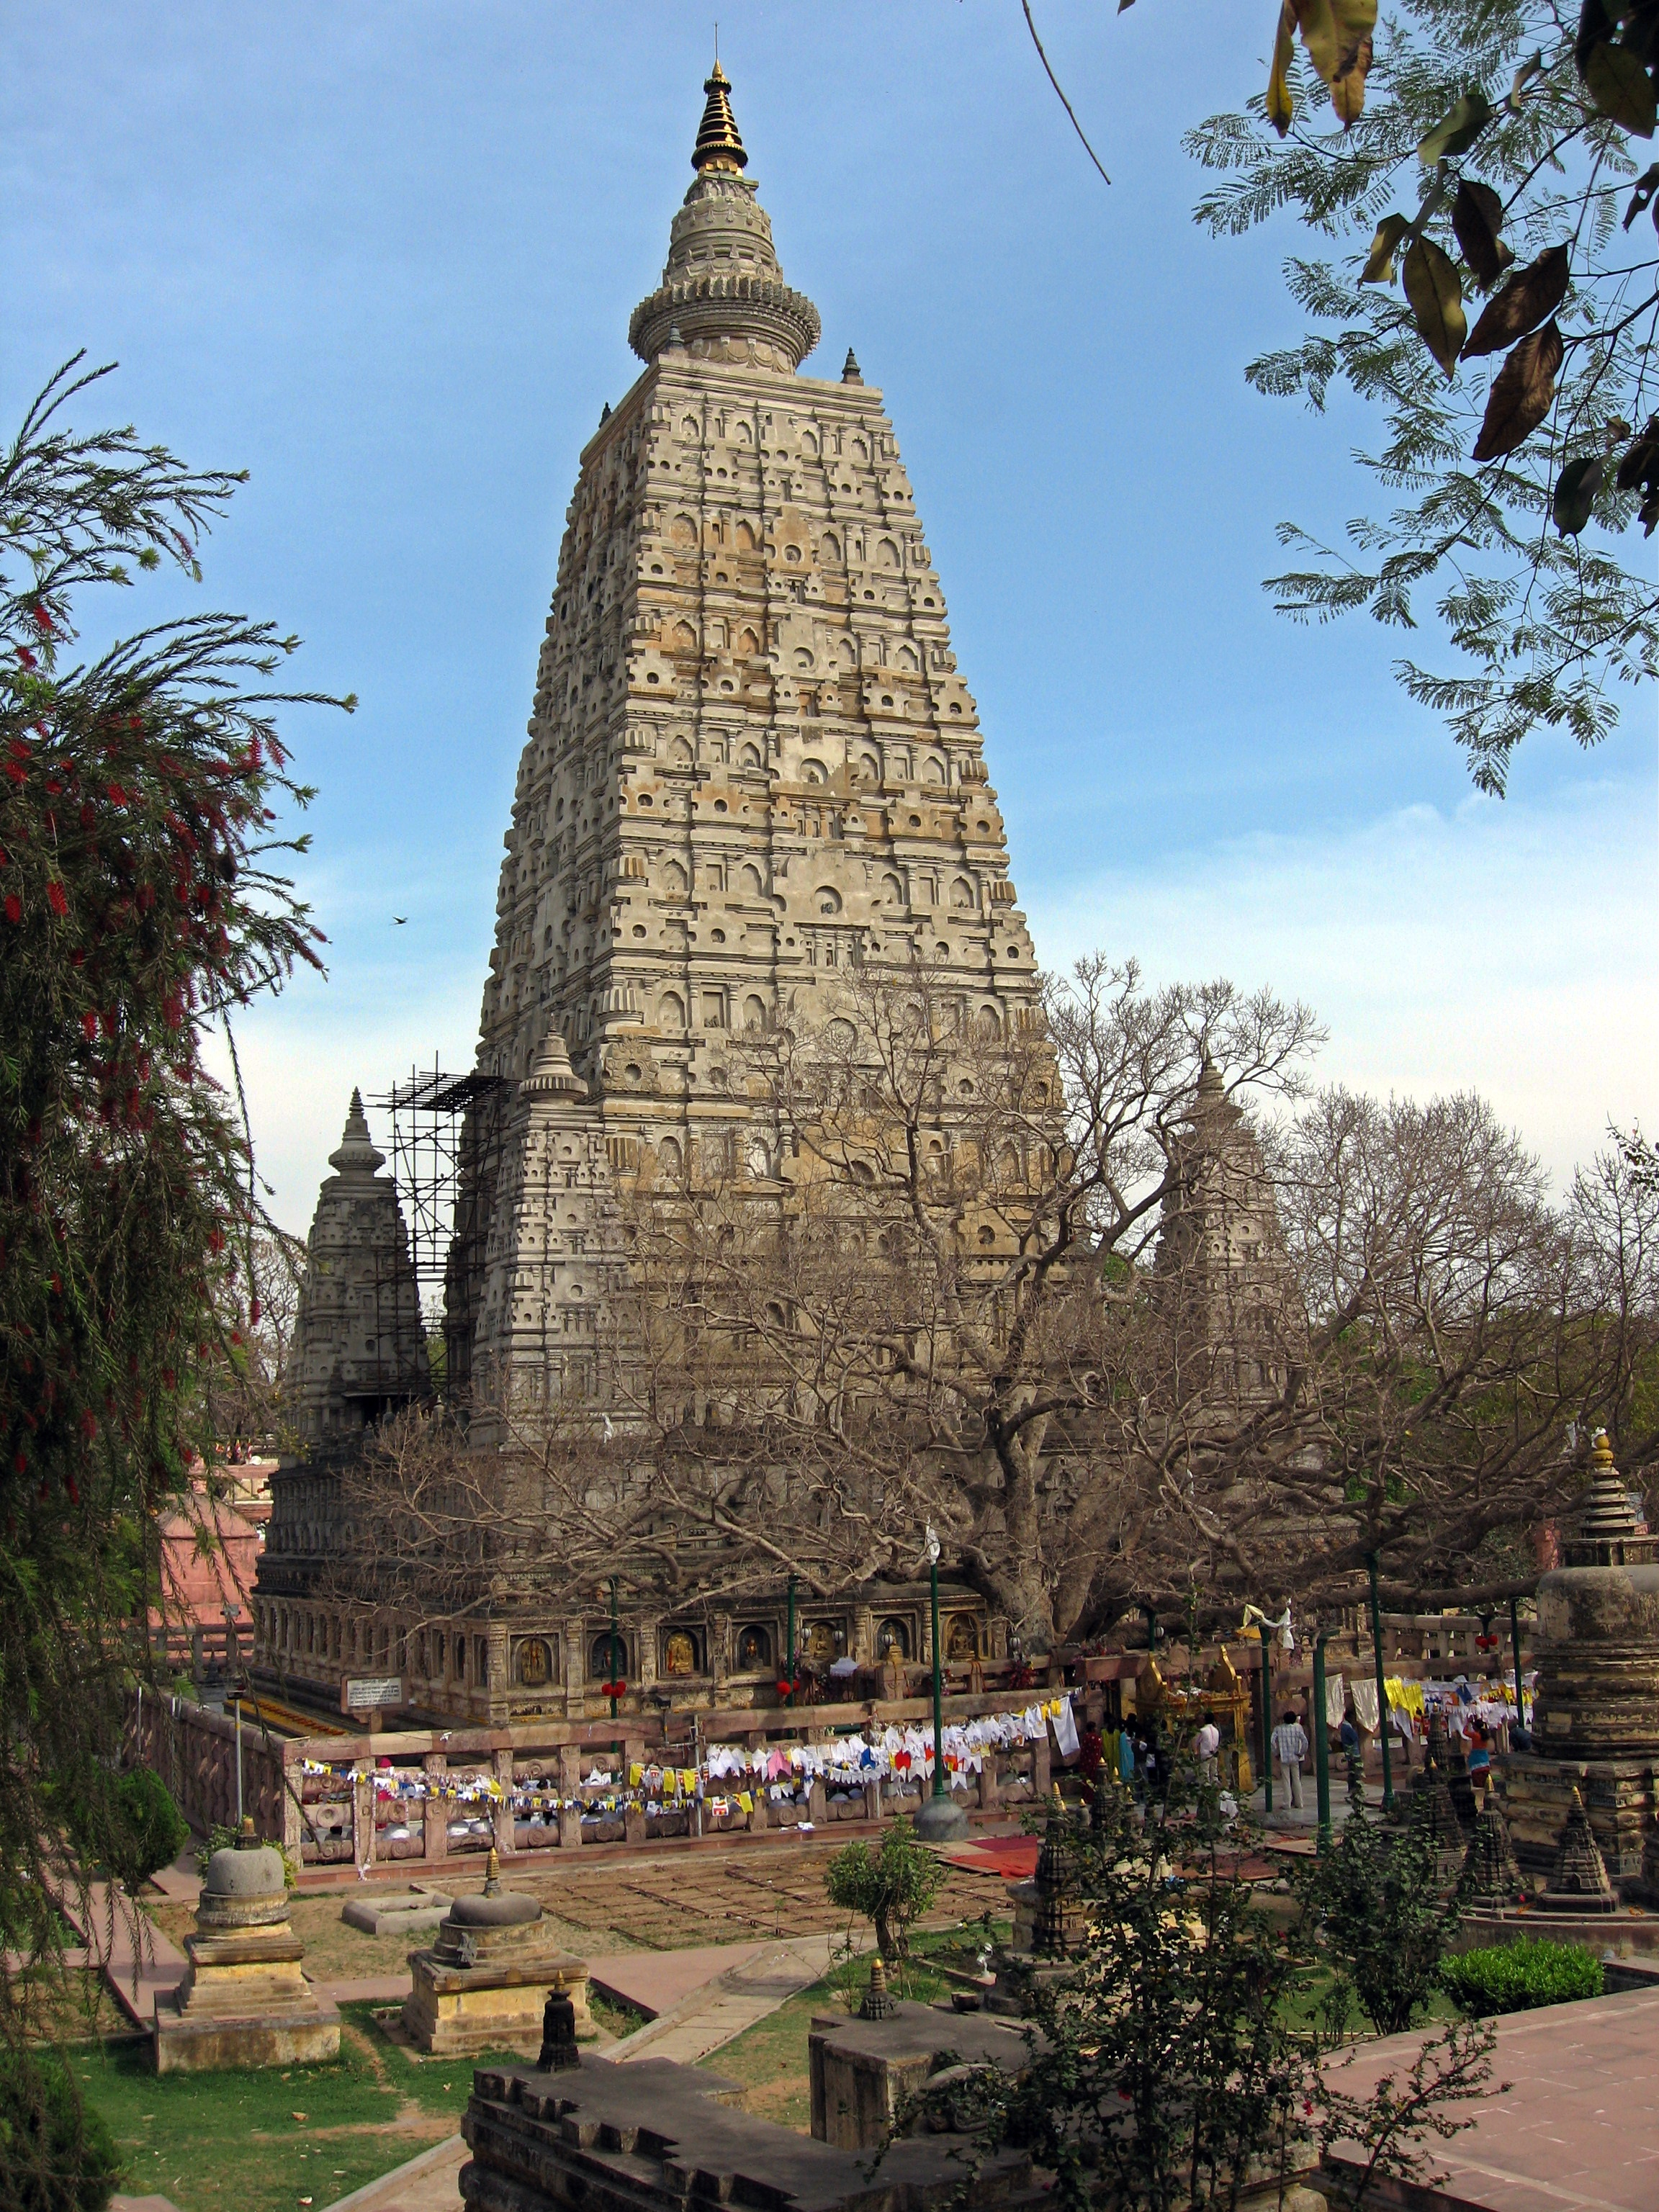 Mahabodhi Temple, Bodhgaya, Bihar, India, view from northwest